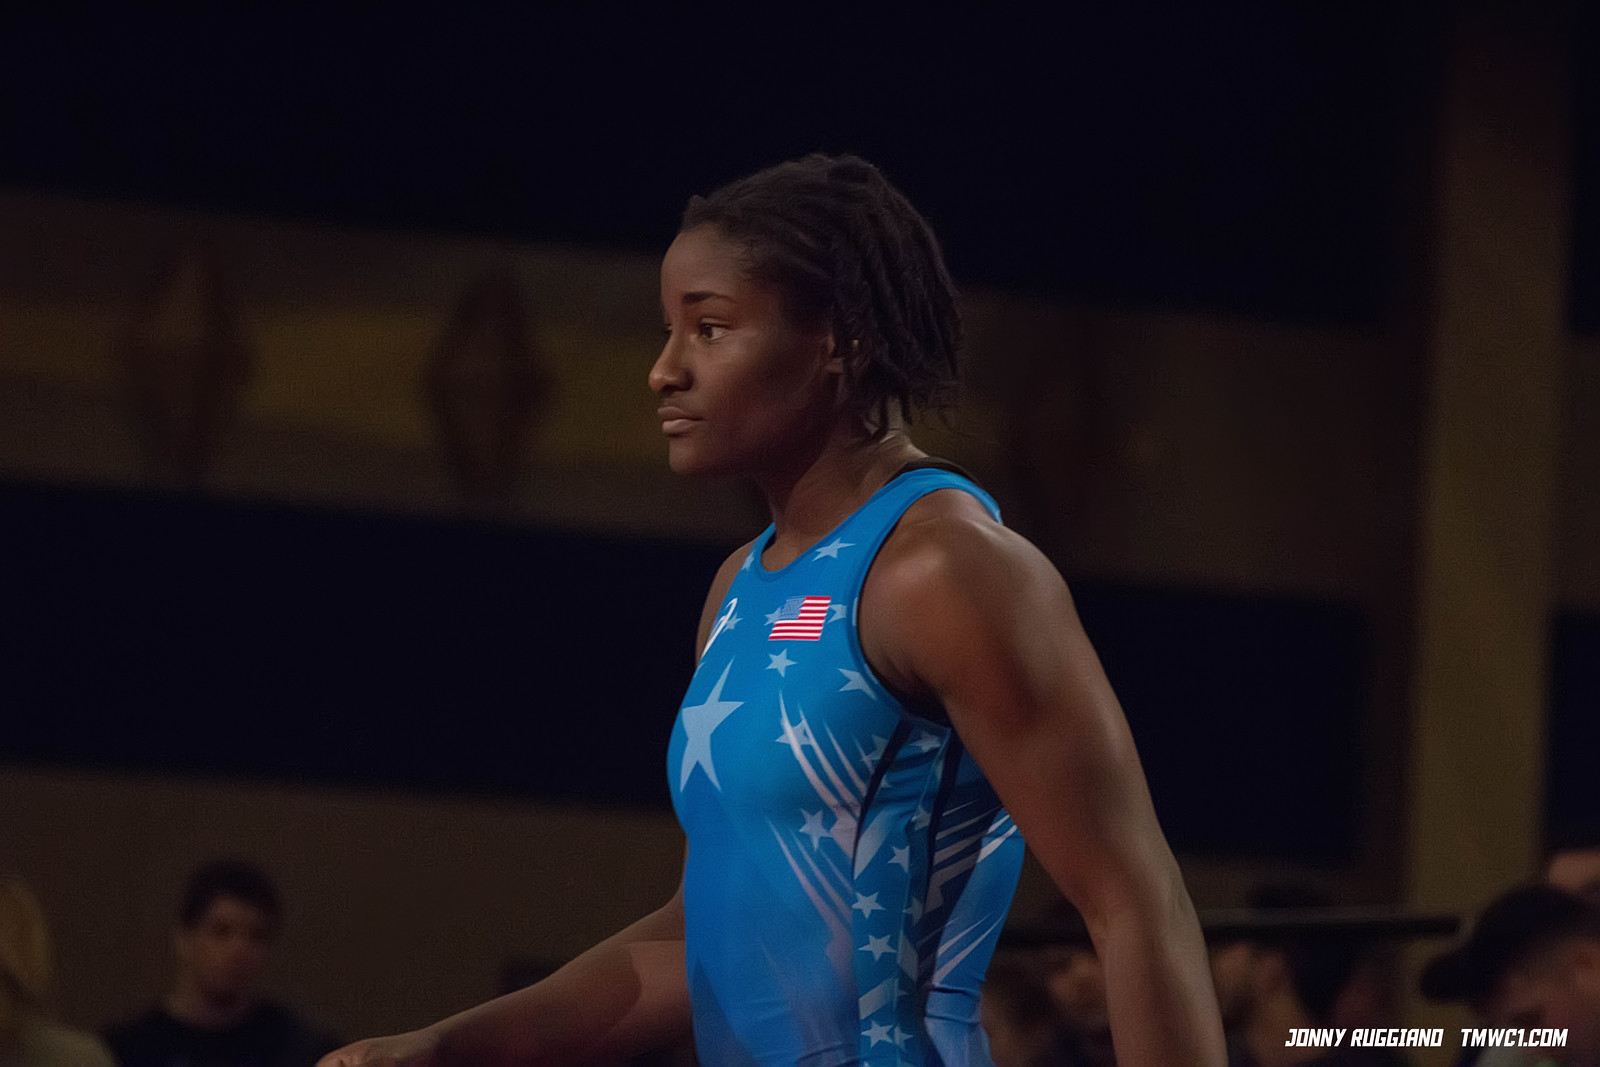 Women Mensah-Stock, Miracle and men Retherford, Fix receive draw for freestyle at World Championships